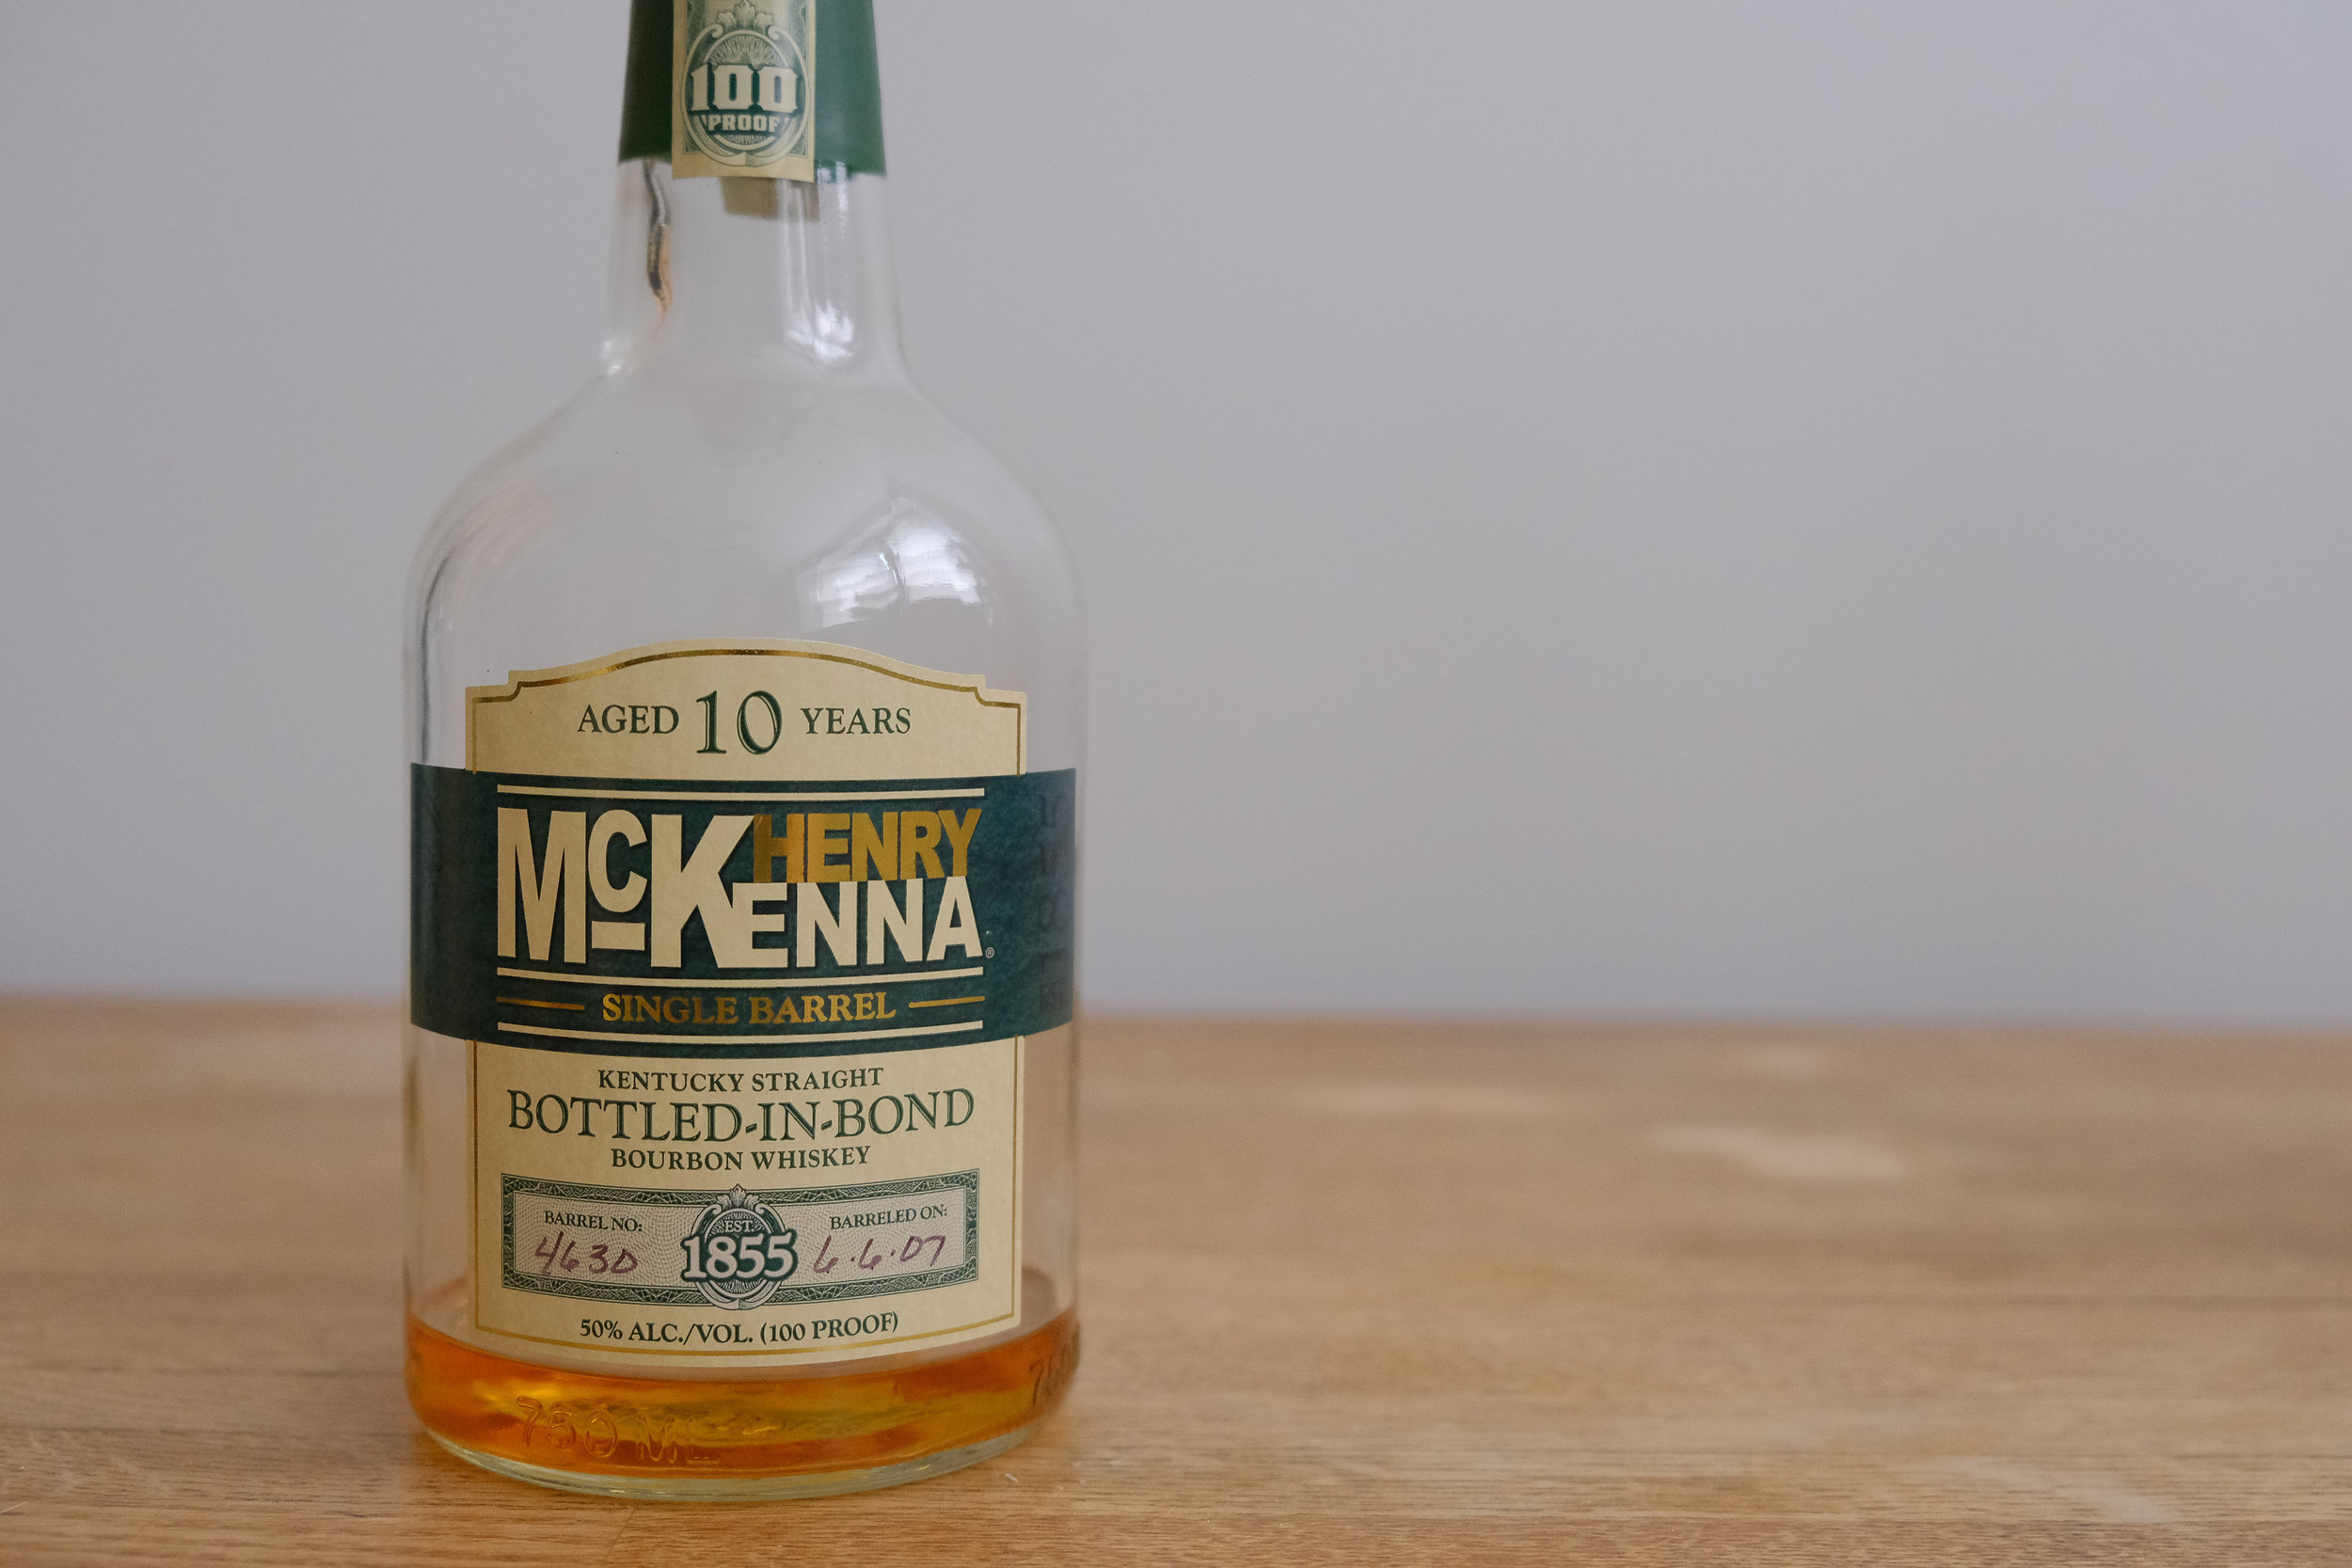 5. Henry McKenna - The recent 'Best in Show Whiskey' at the 2019 San Francisco World Spirits Competition. This one is worth grabbing for dad and for yourself. A 10 year, bottled-in-bond, single barrel whiskey makes this one heck of a bottle.